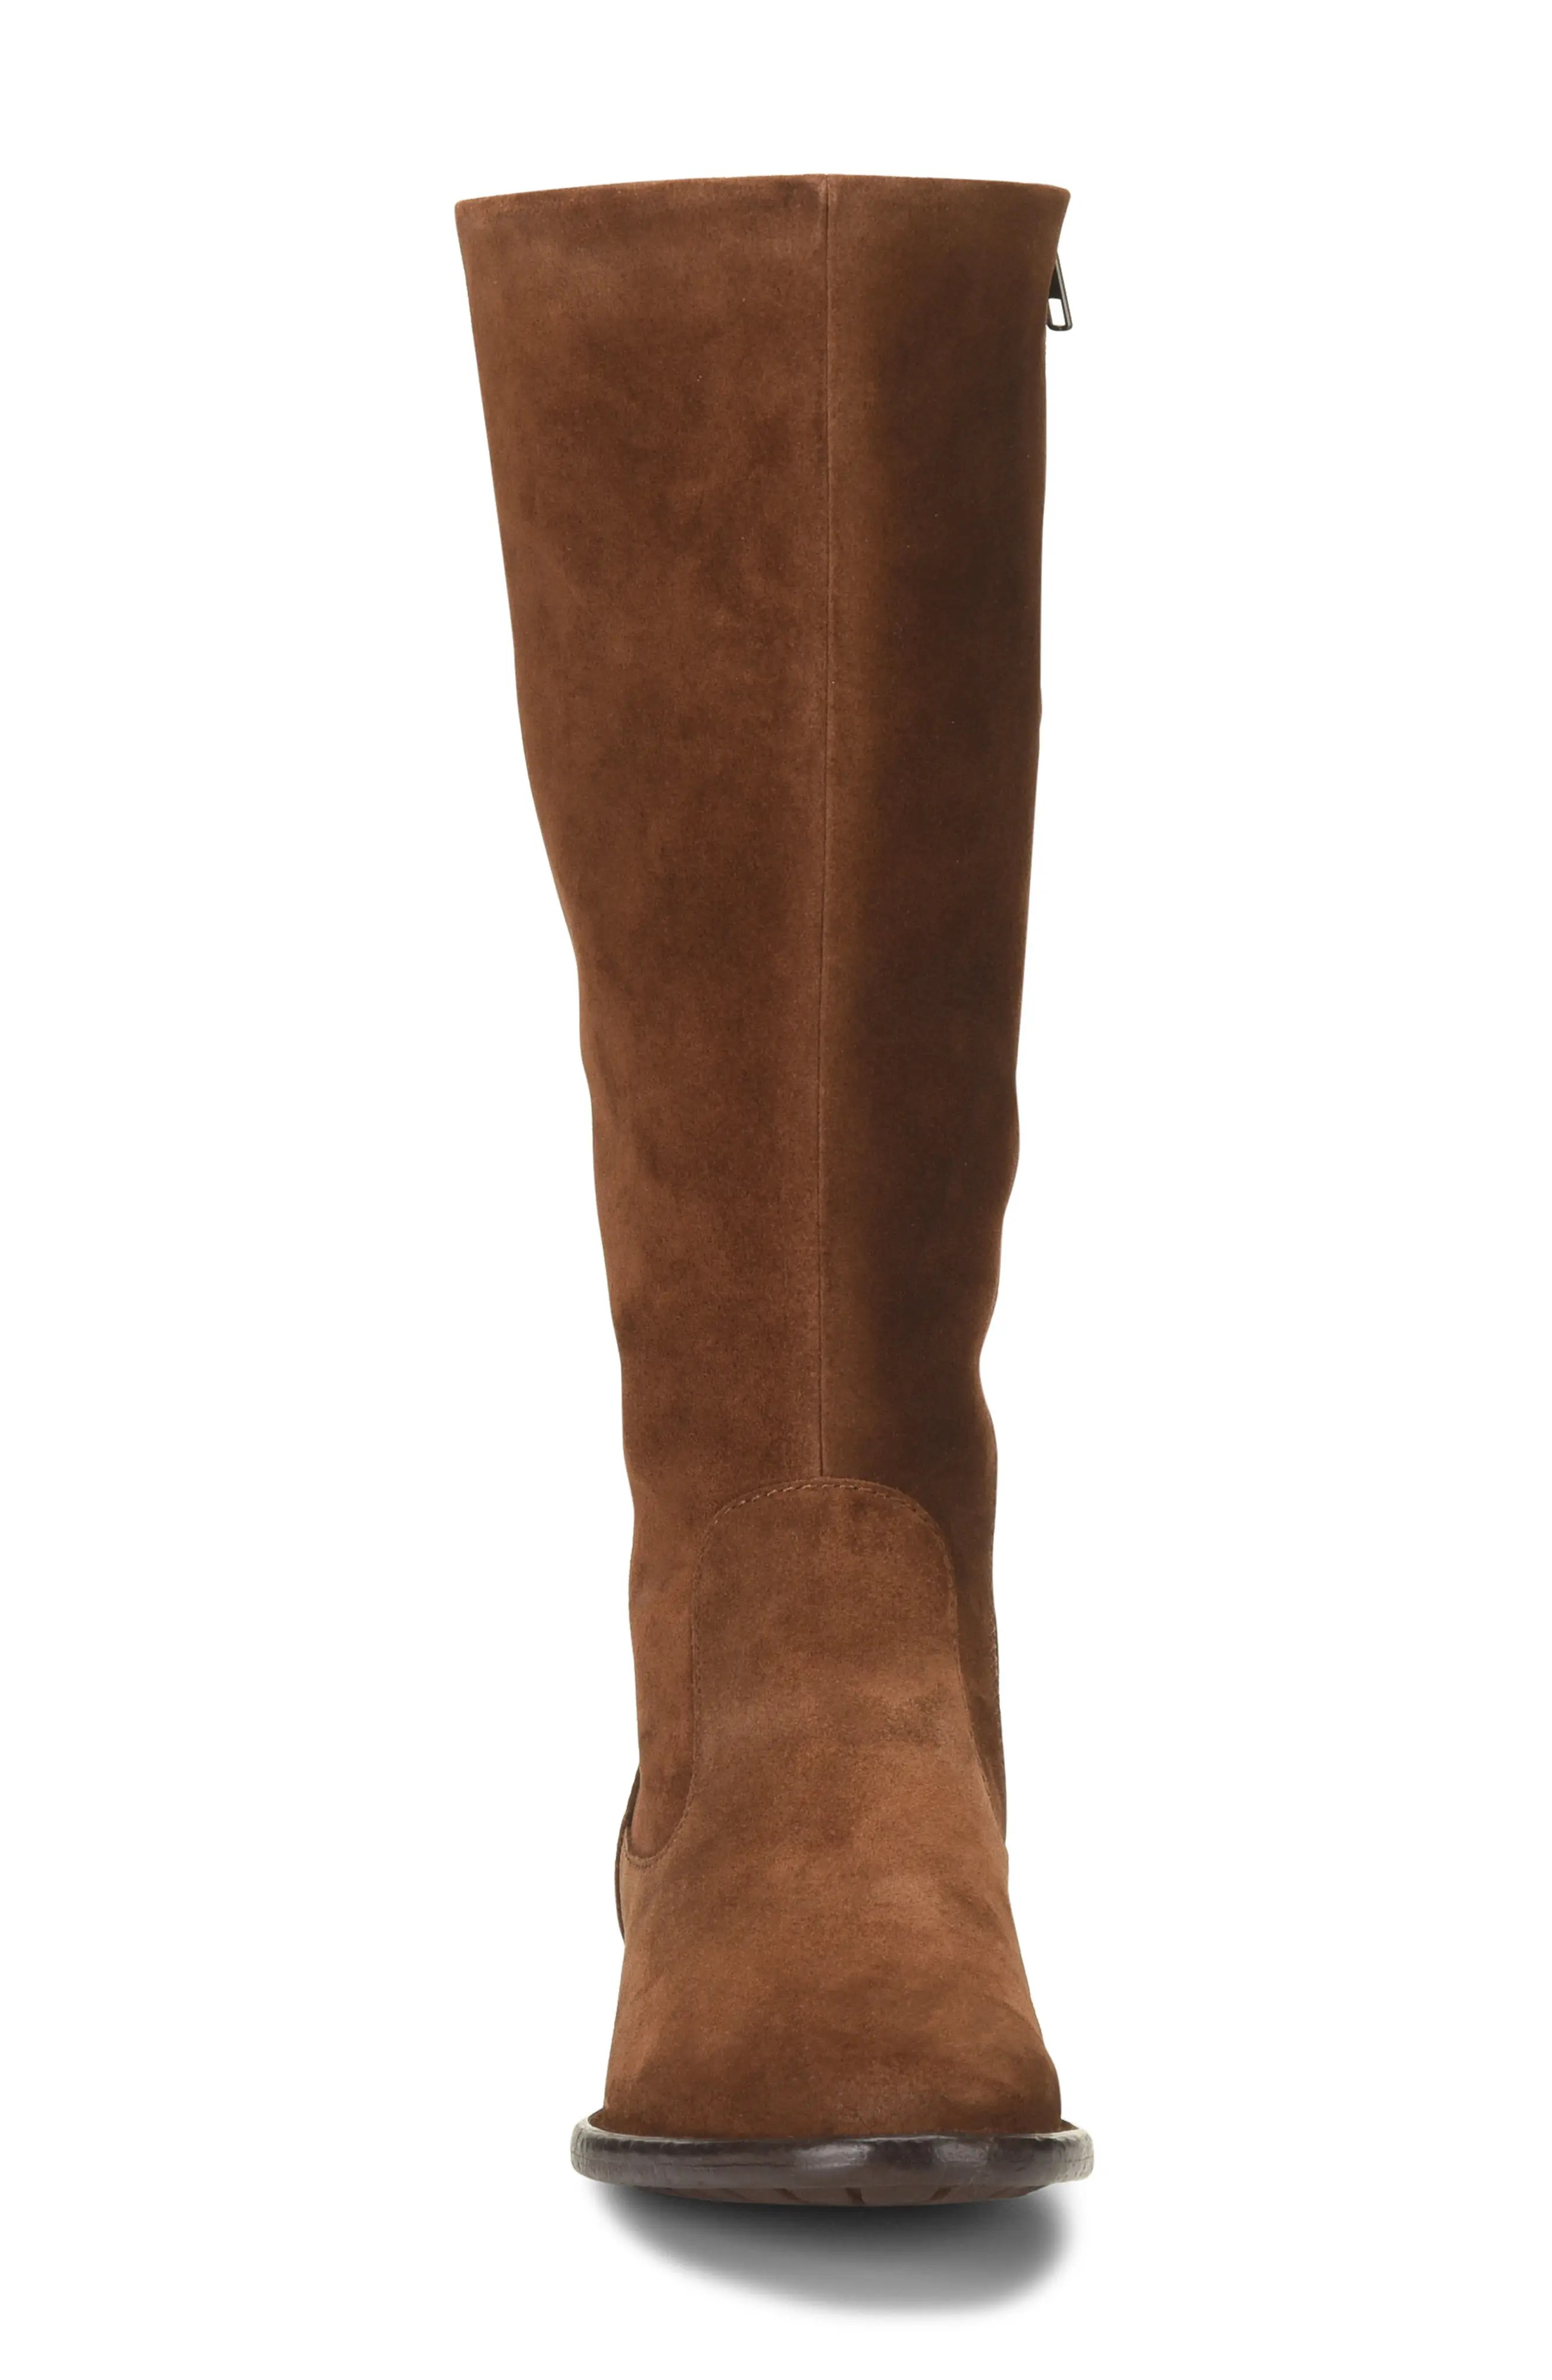 north riding boot